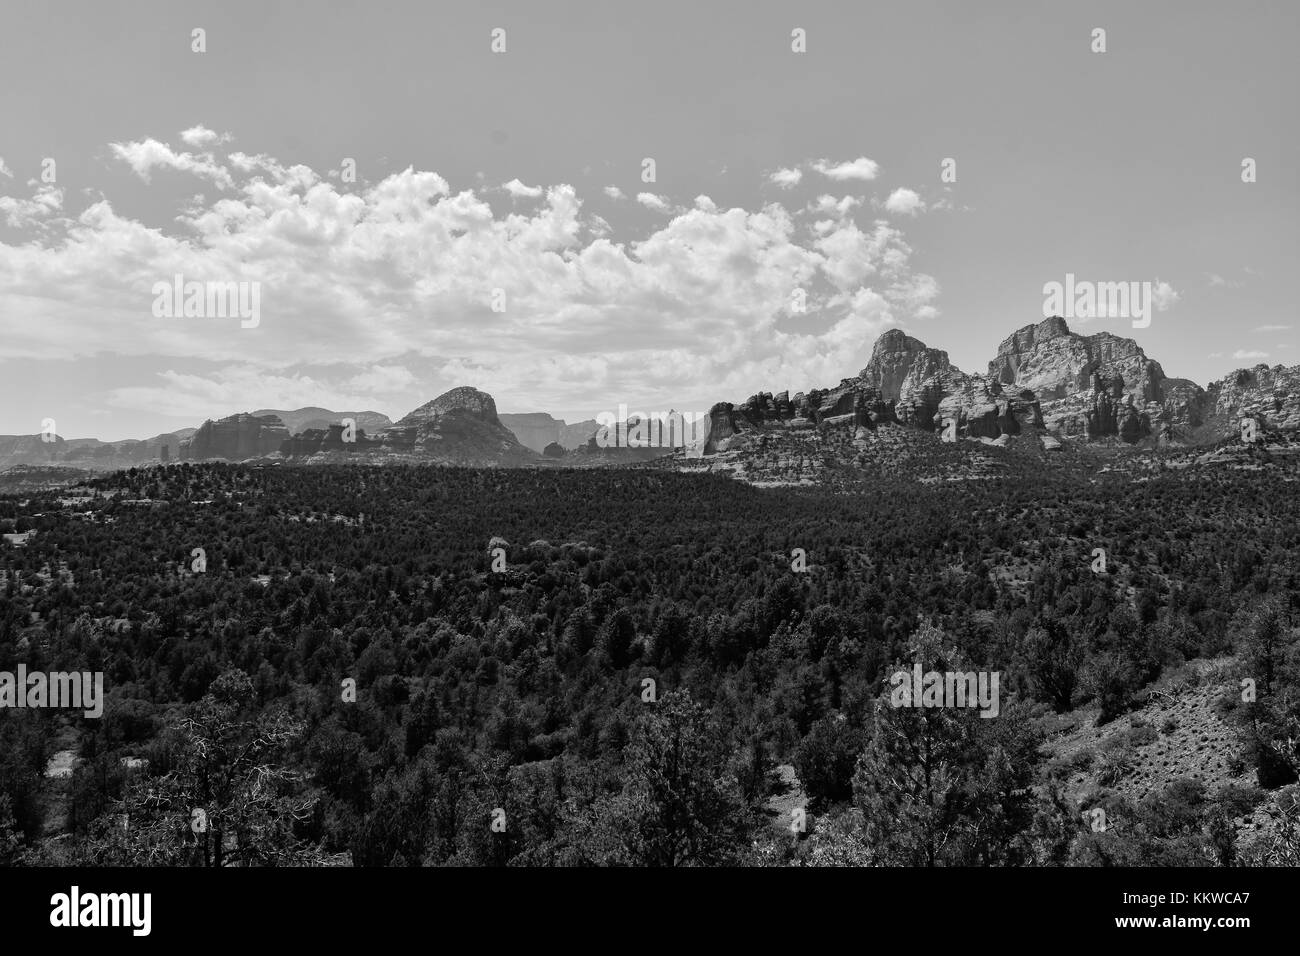 Sedona Arizona Red Rocks Landscape View Black and White - Stock Image